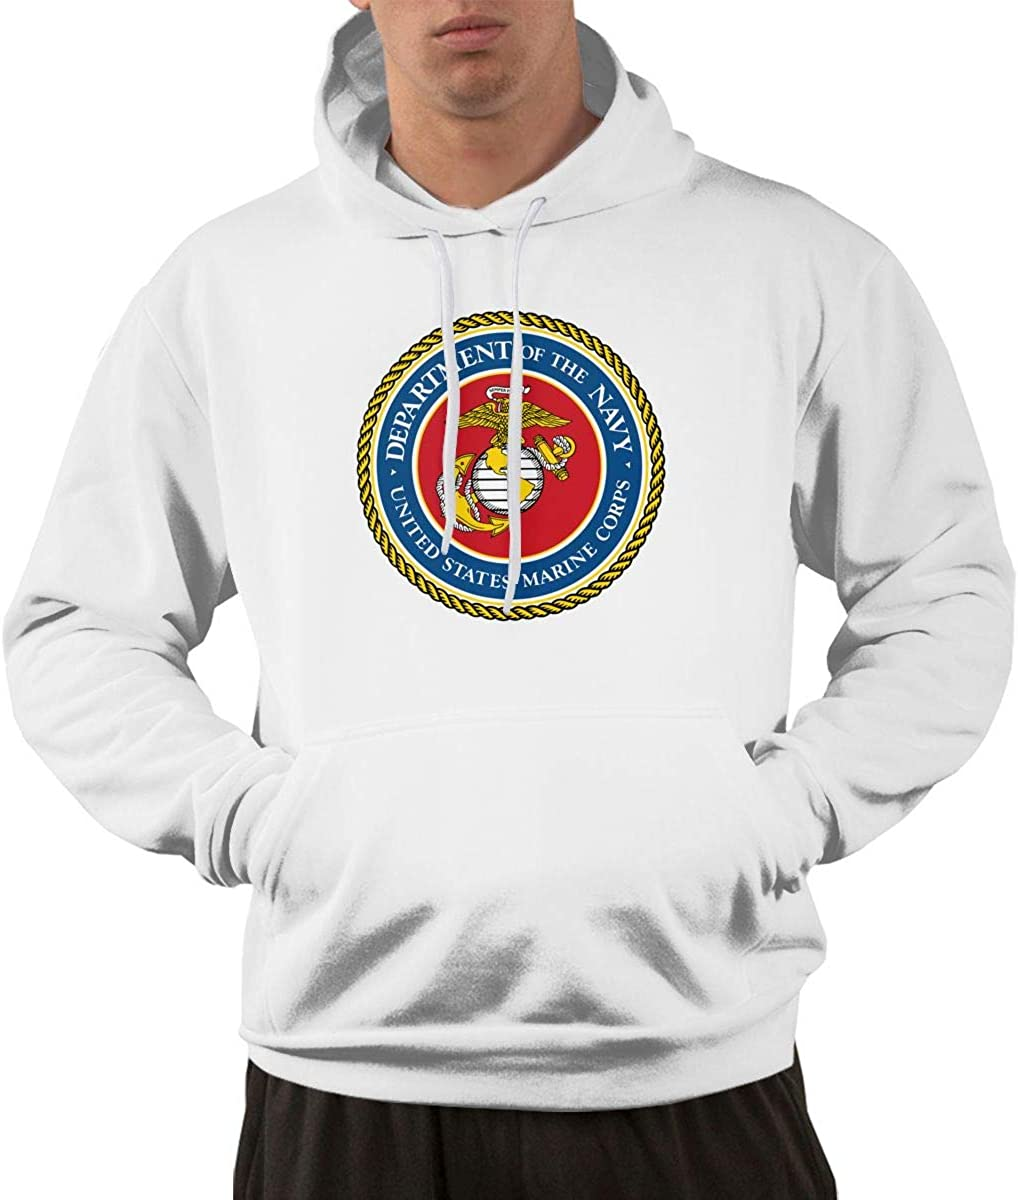 Oersted Marine Corps Youth Sweatshirt